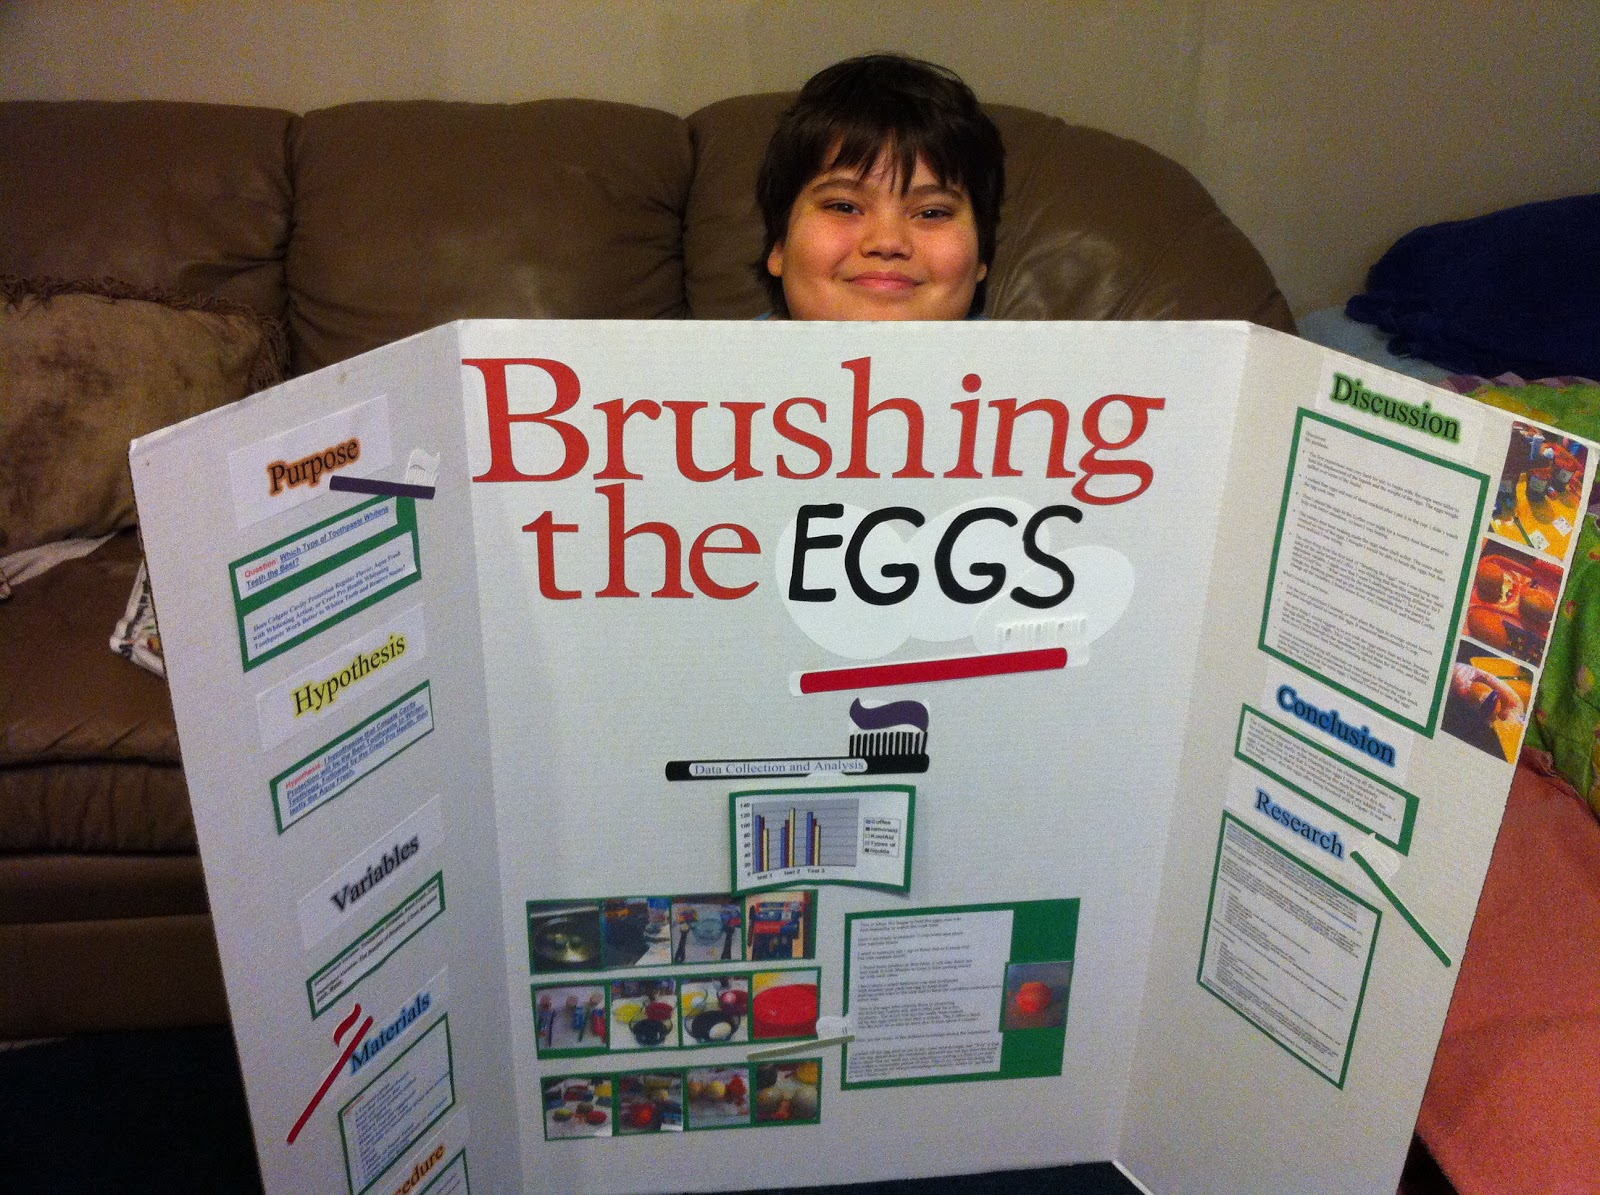 Science fair project ideas for 8th grade &;t&; had to do a science fair